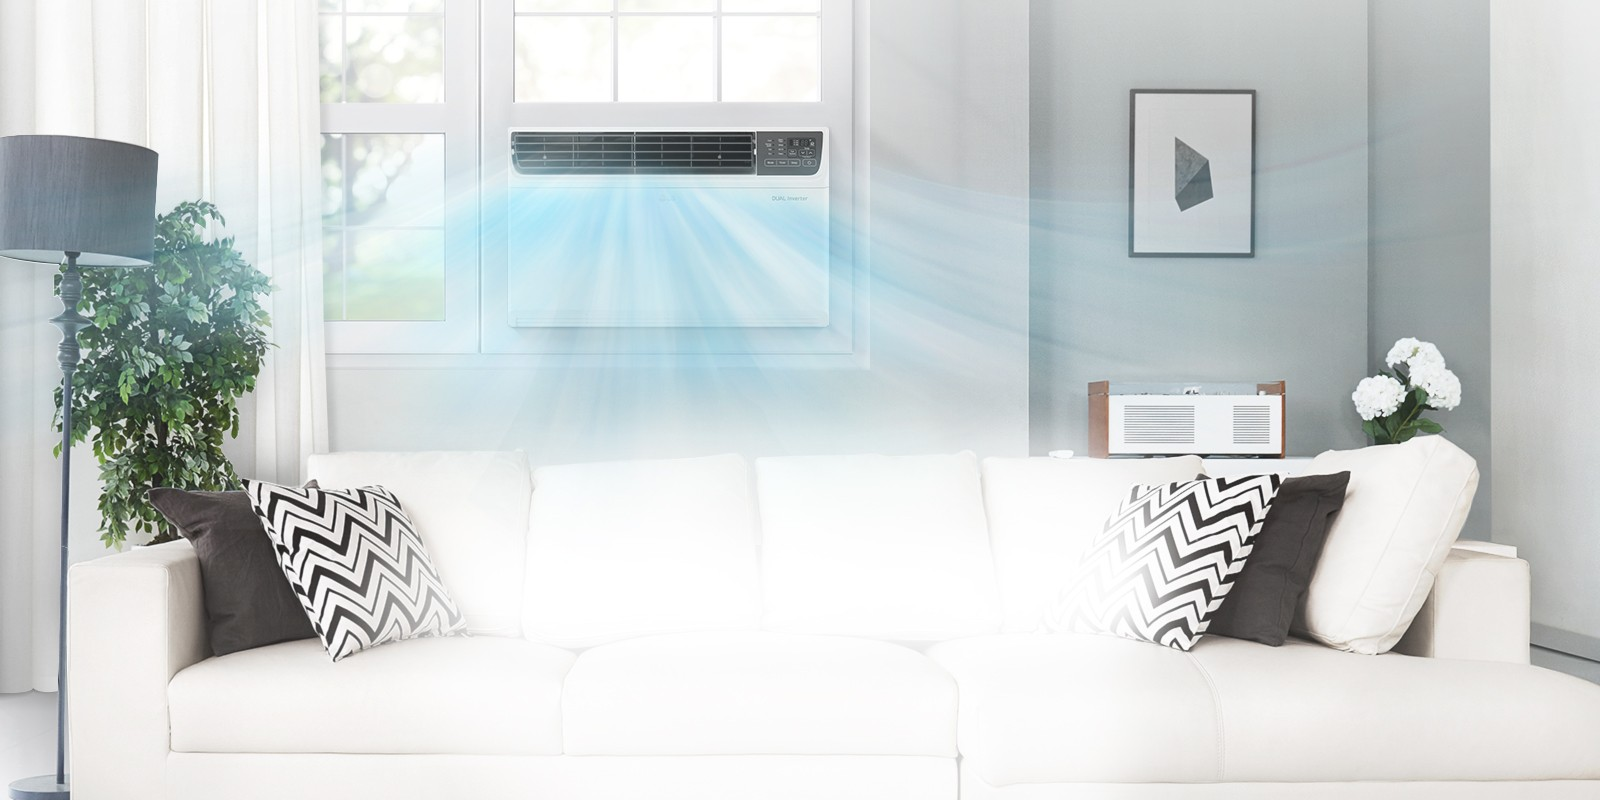 How To Clean Air Conditioner Coils Inside House